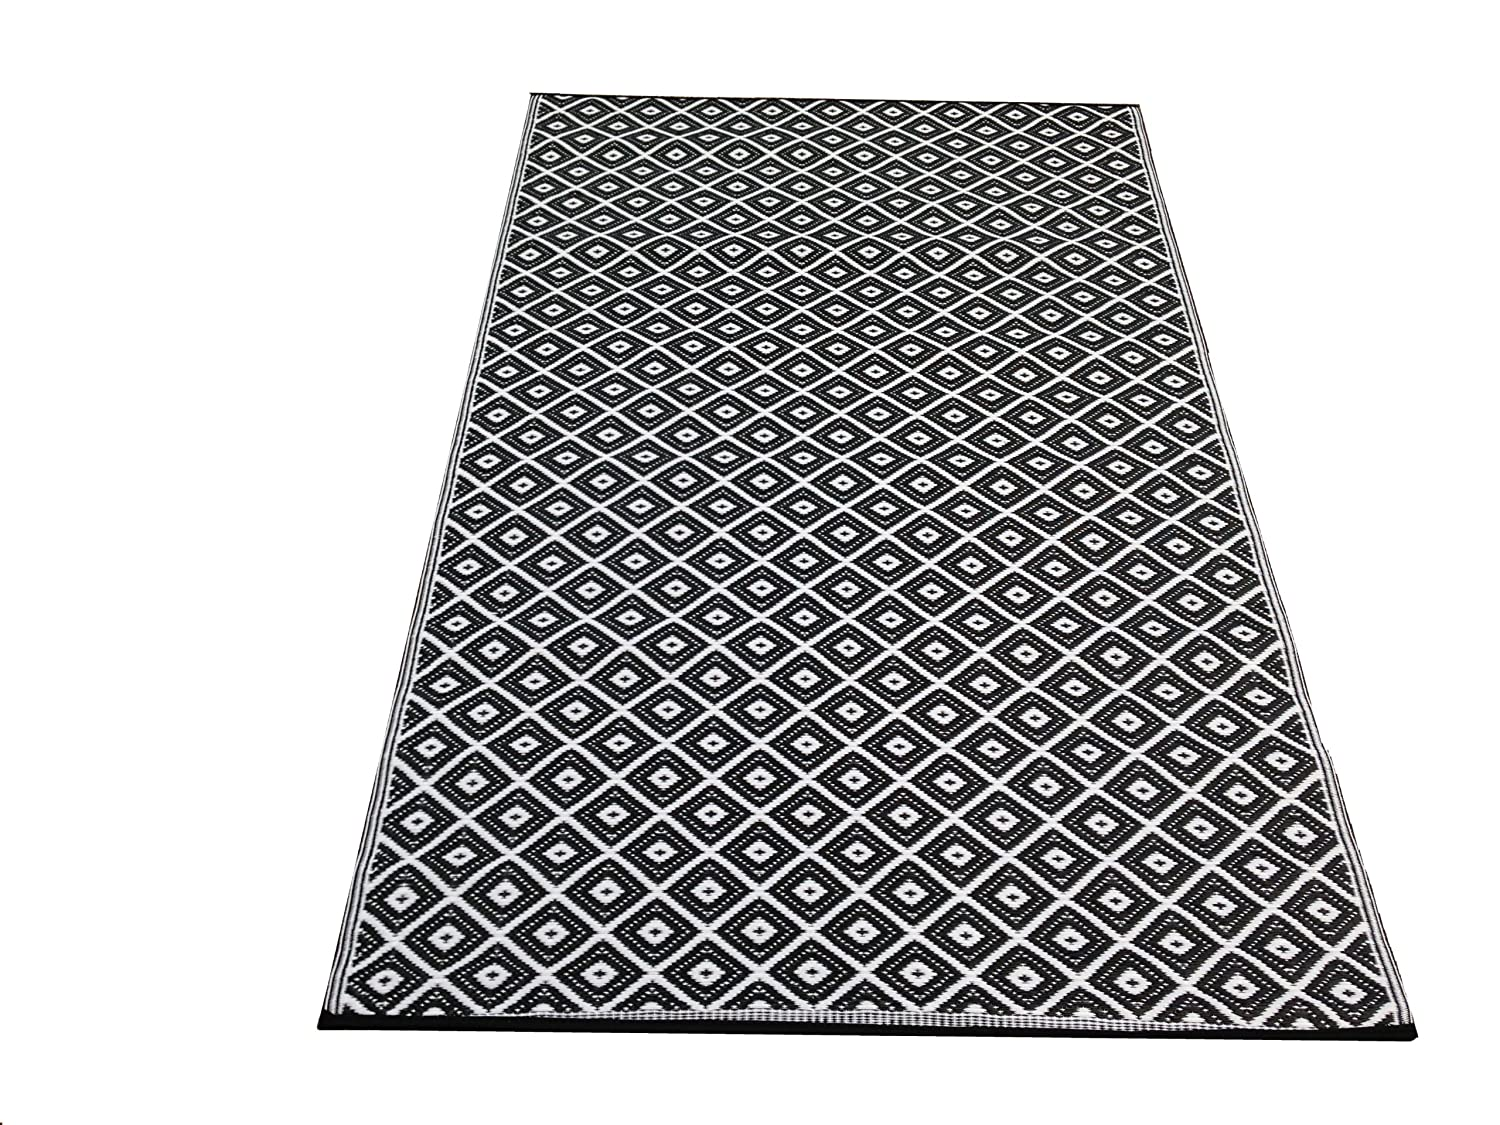 New Large Quality Arabian Outdoor Black And White Plastic Rug 5x8ft EBay